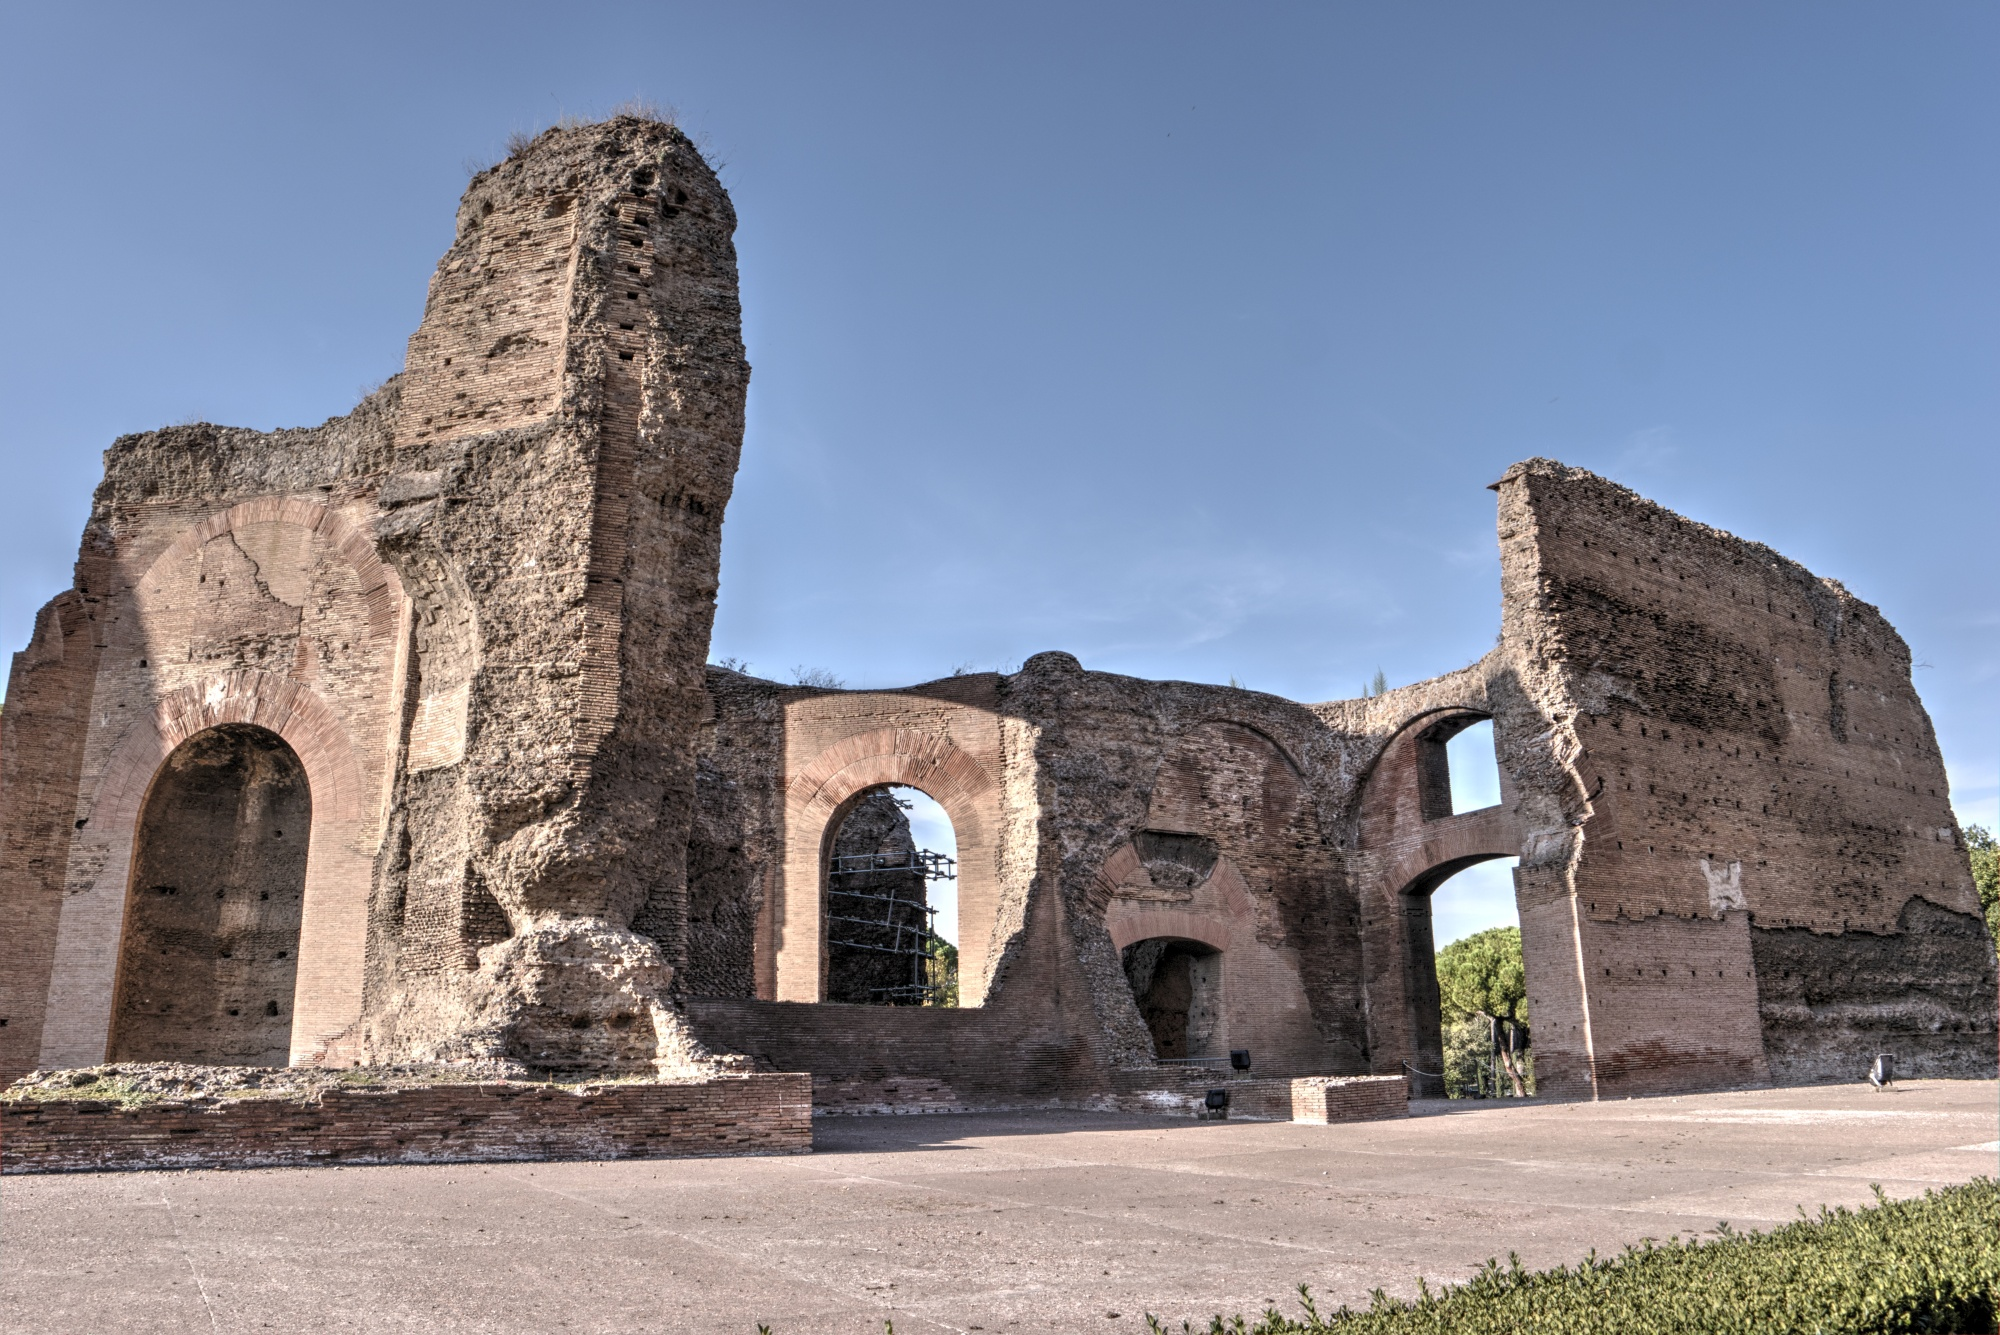 Baths of Caracalla in Rome